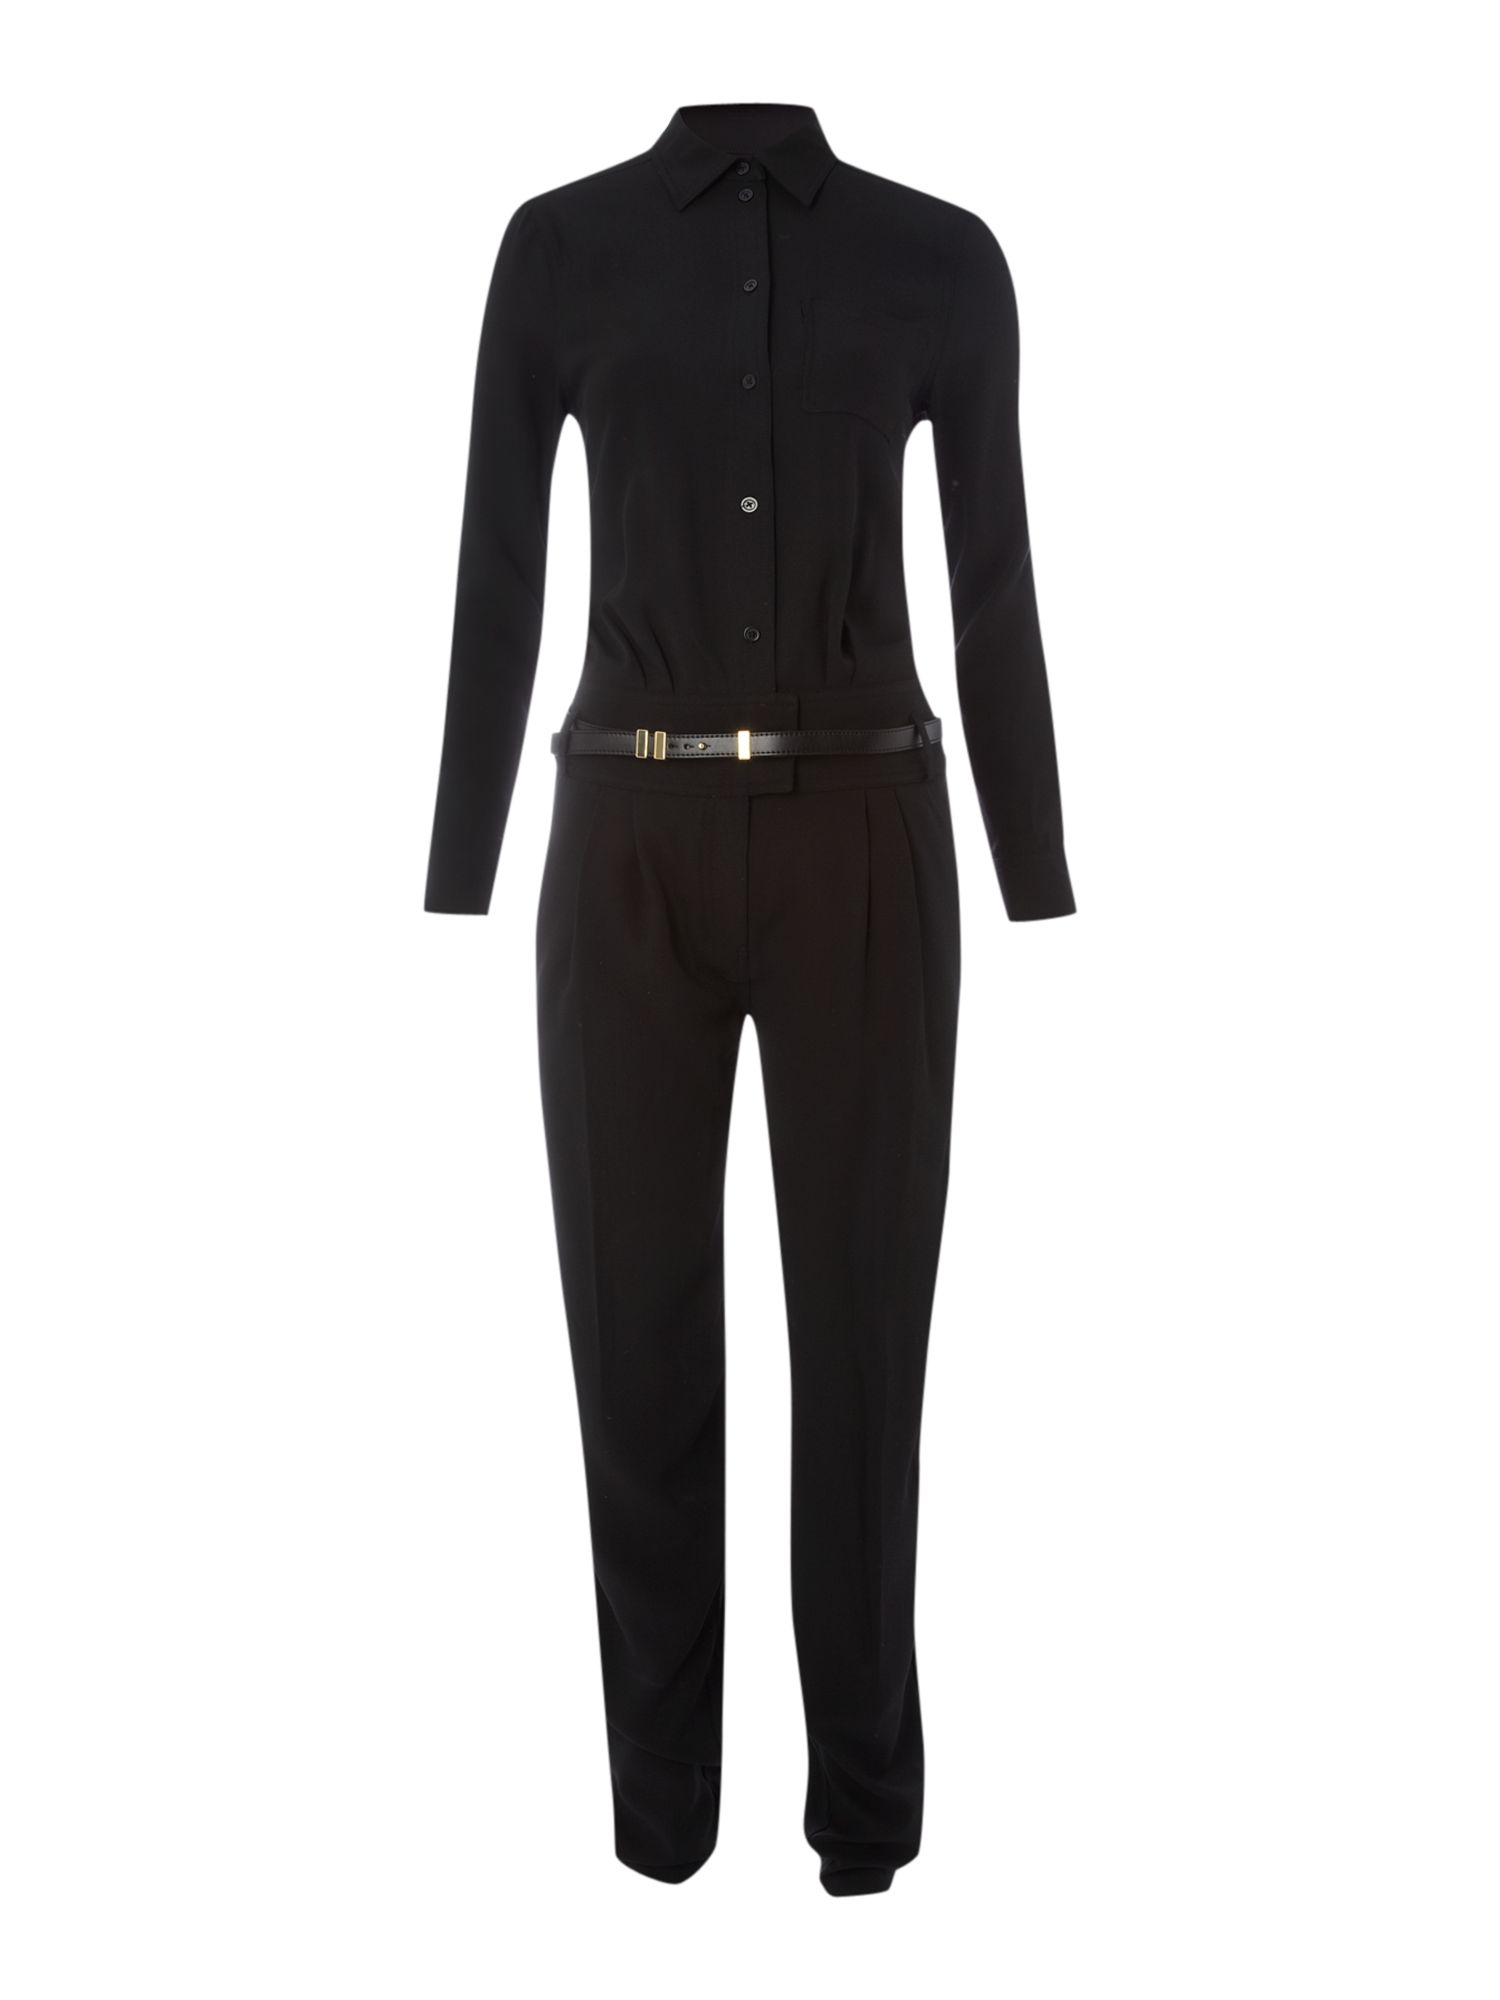 Find michael kors jumpsuit at ShopStyle. Shop the latest collection of michael kors jumpsuit from the most popular stores - all in one place. MICHAEL Michael Kors Chain Detail Jumpsuit Women's Jumpsuit & Rompers One Piece $ $ Get a Sale Alert Michael Kors Silk-Georgette Slit-Sleeve Jumpsuit $ $2, Get .